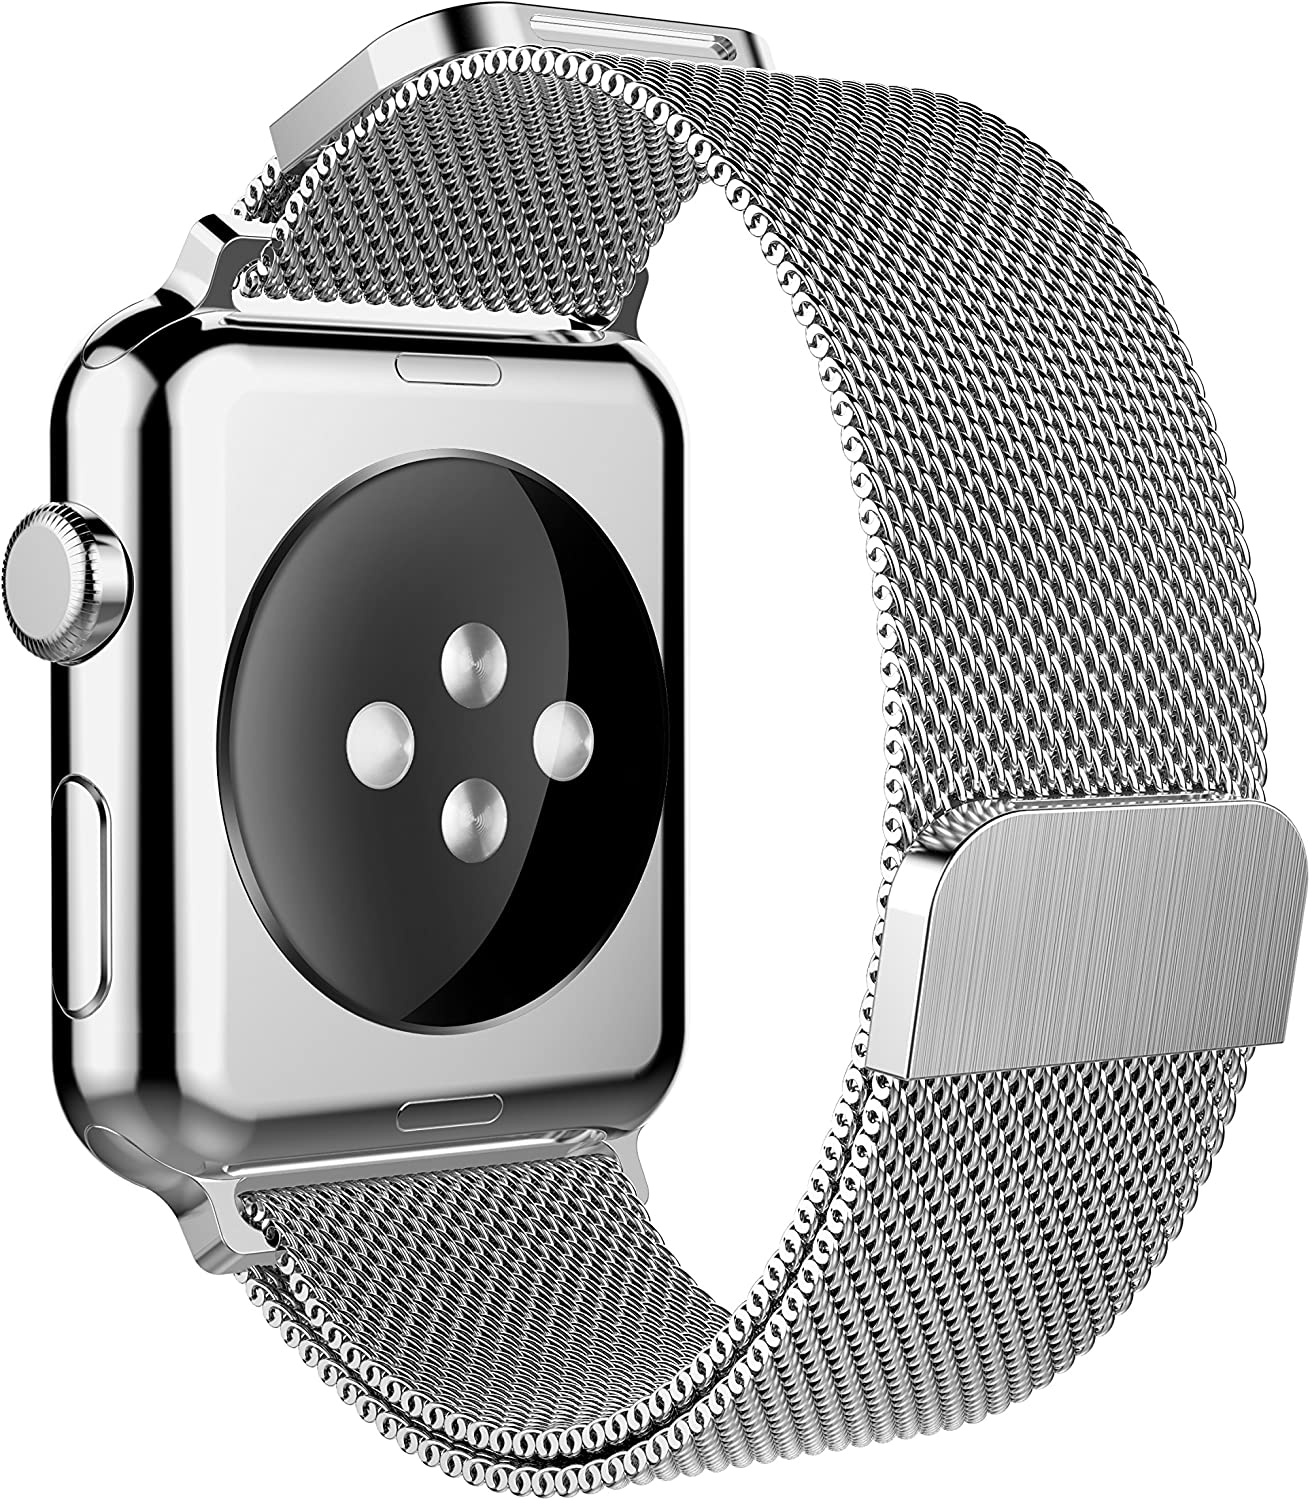 Yaber double head double buckle two-way adjustment Stainless Steel Mesh Band Compatible for Apple Watch 38mm 40mm 42mm 44mm Series SE 6 5 4 3 2 1